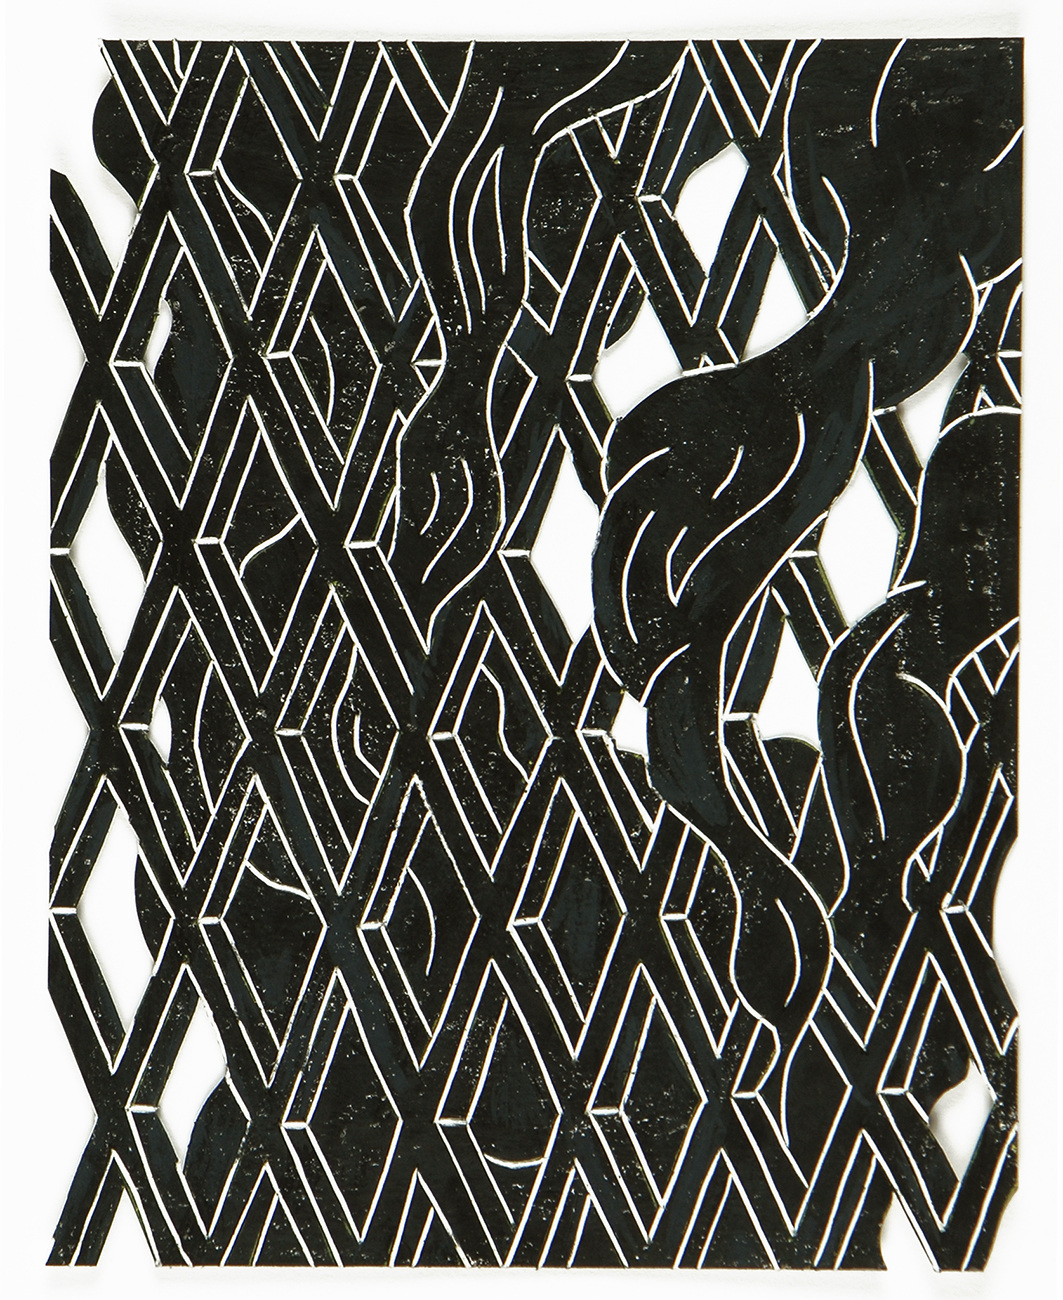 black drawings 2014-2015 Smoke & Lattice